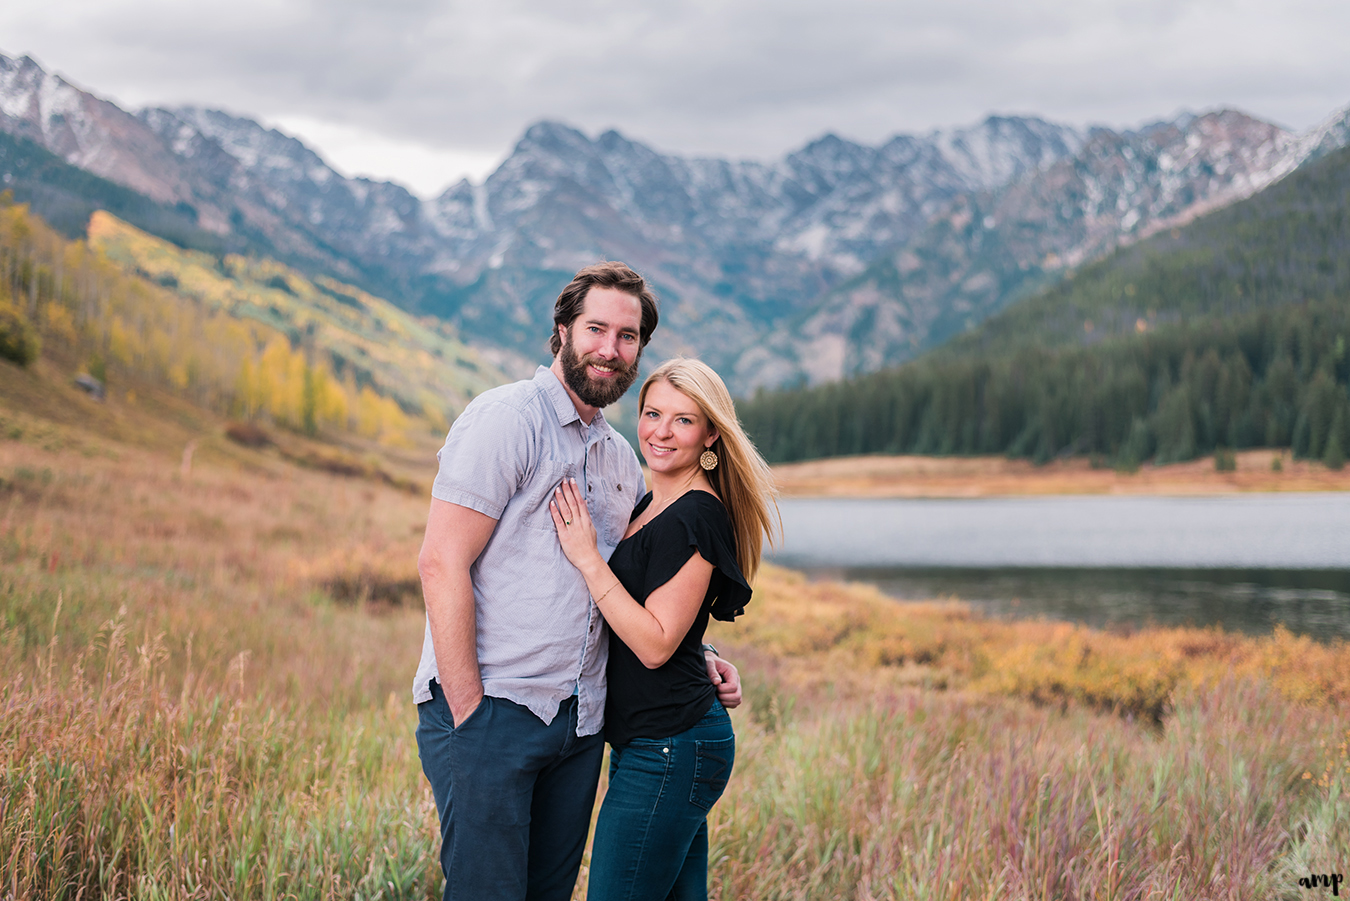 Engagement photo at Piney River Ranch in Vail